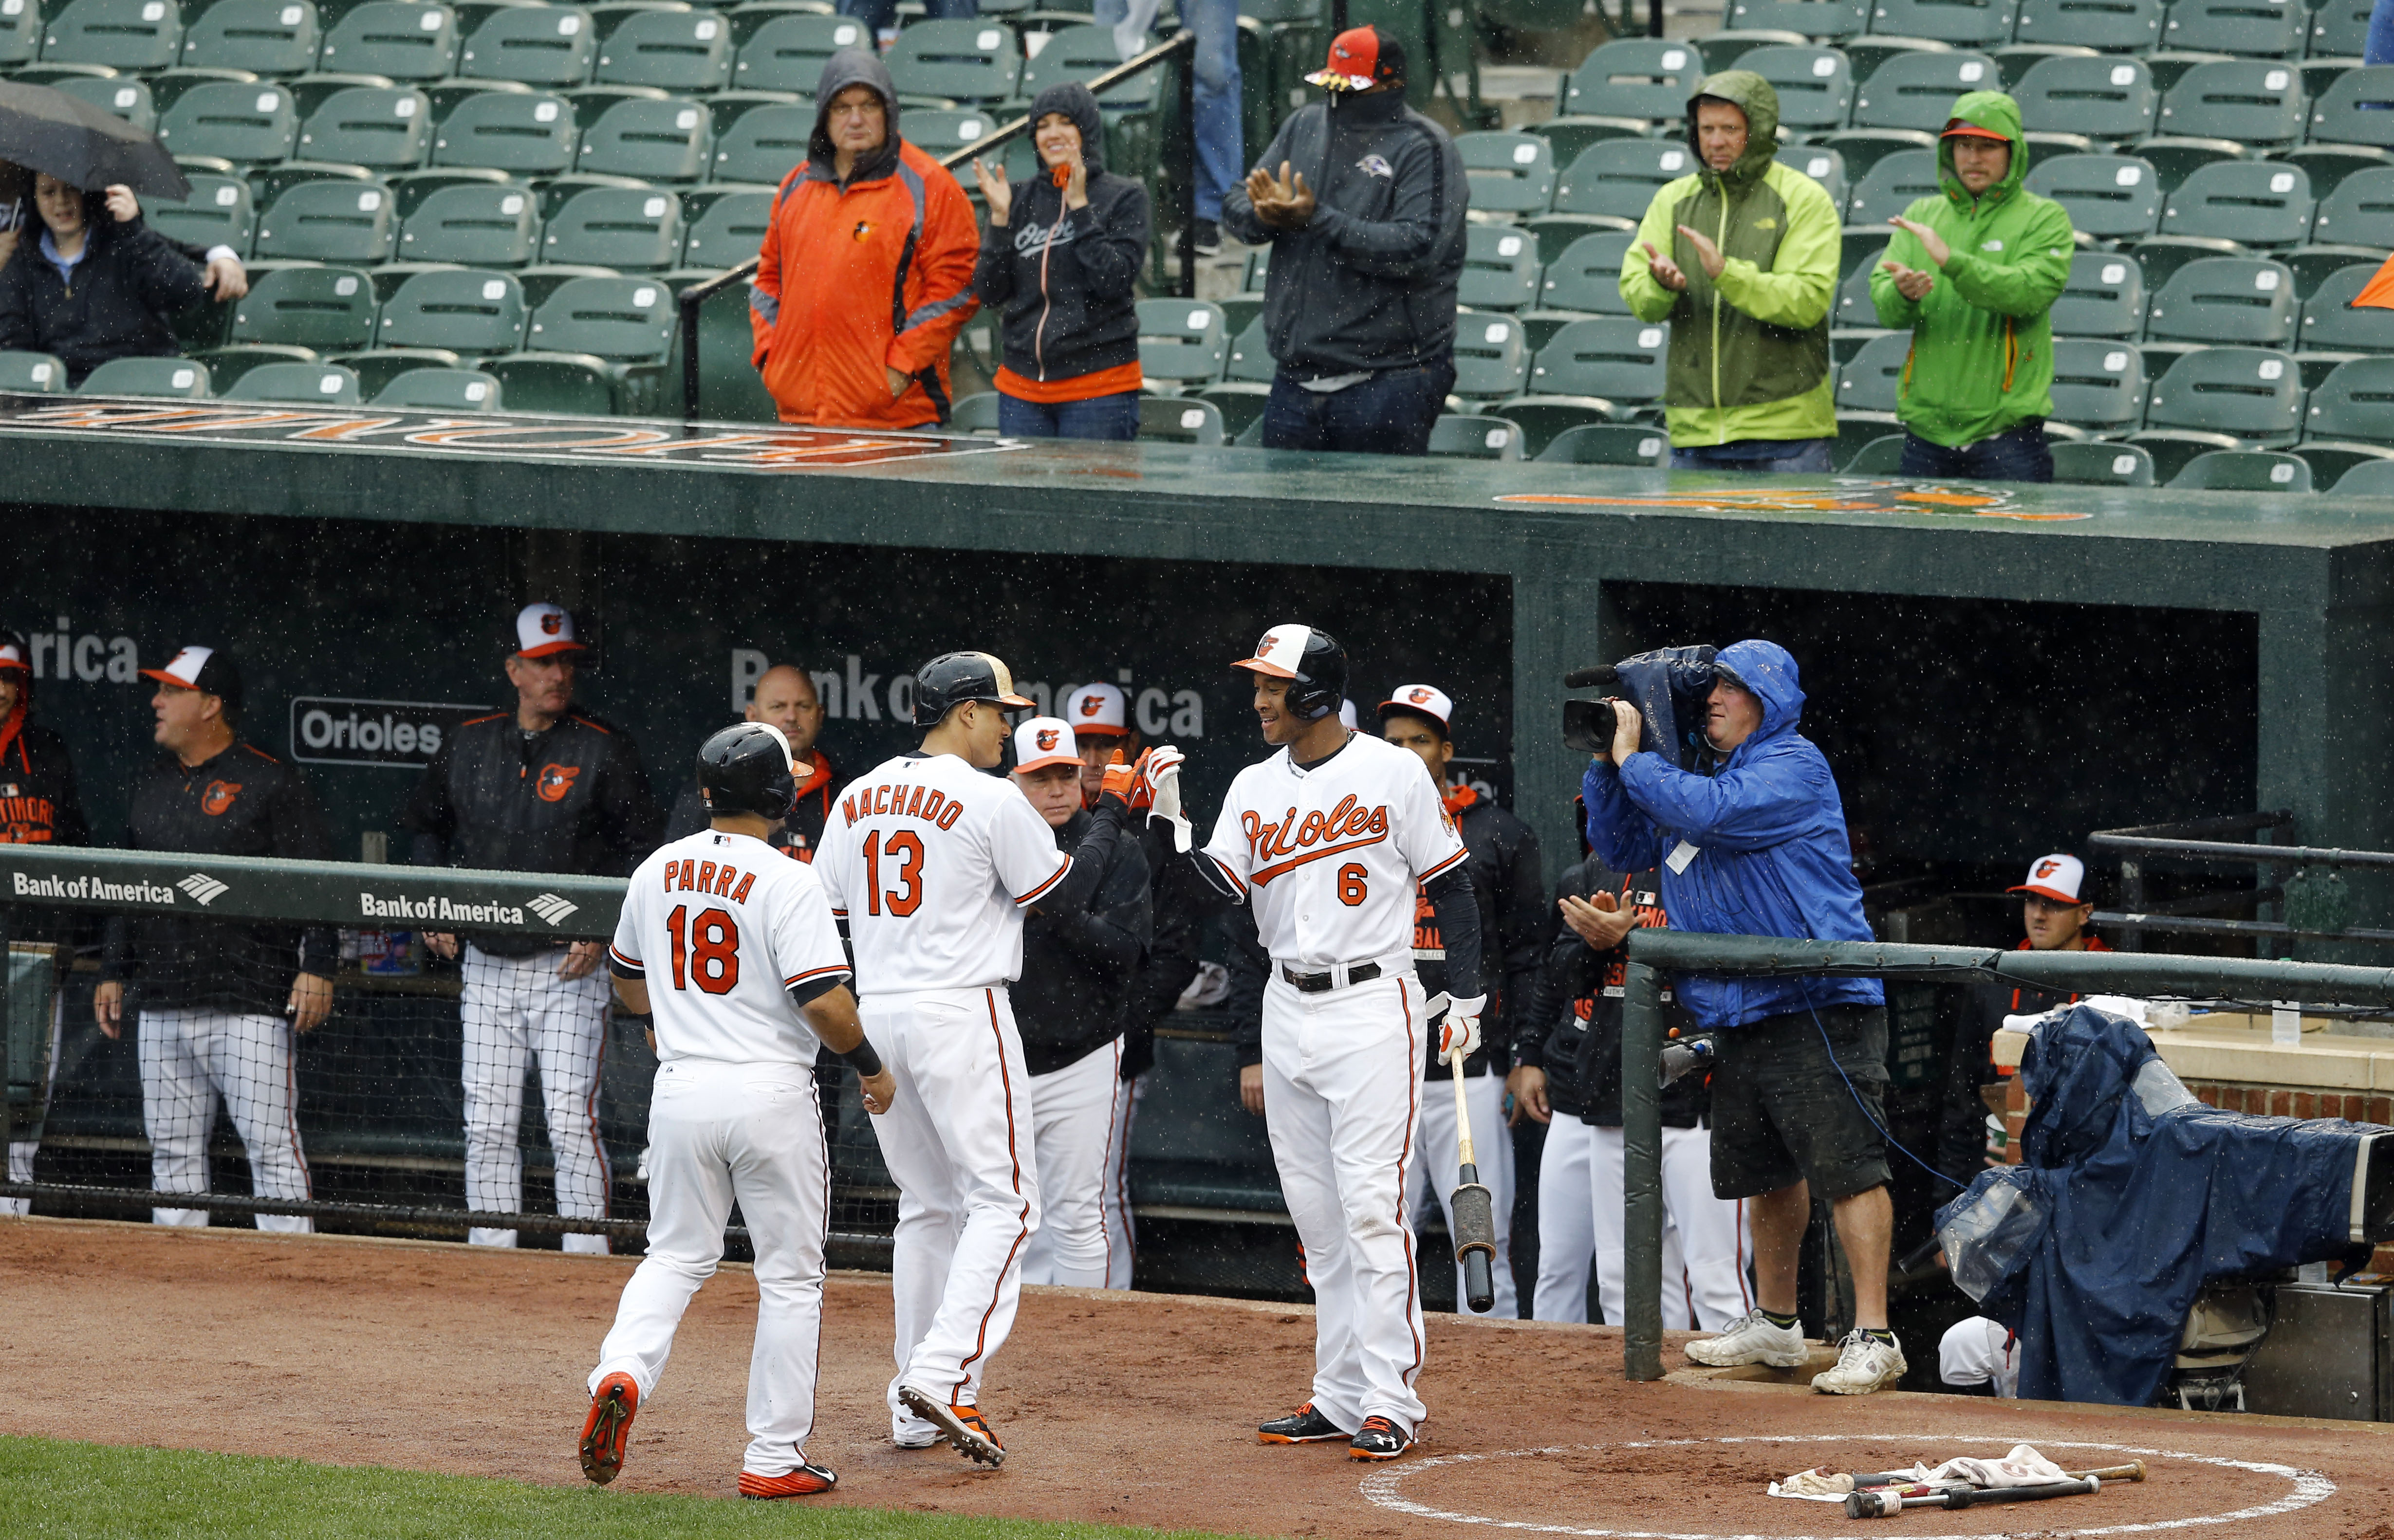 Baltimore Orioles' Manny Machado (13) high-fives teammate Jonathan Schoop (6) after he batted in Gerardo Parra on a home run in the first inning of a baseball game against the Toronto Blue Jays, Thursday, Oct. 1, 2015, in Baltimore. (AP Photo/Patrick Sema